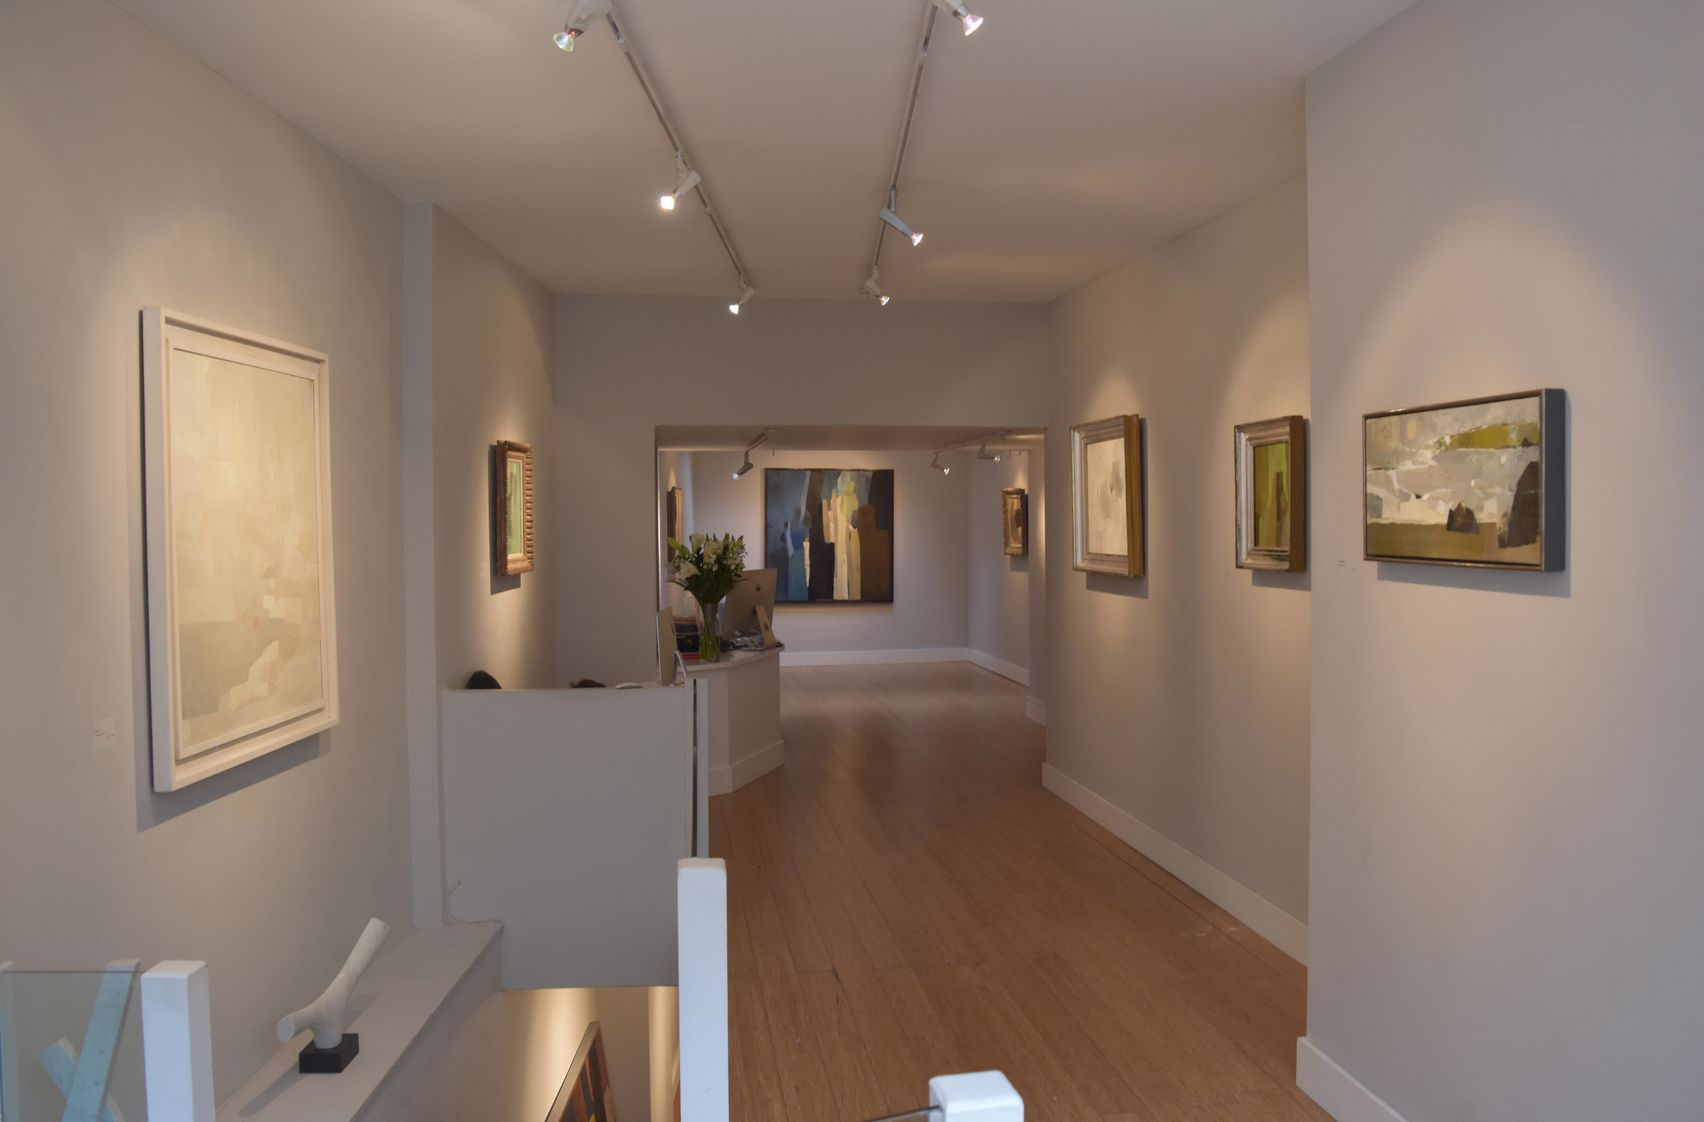 Gallery Space, Cadogan Contemporary